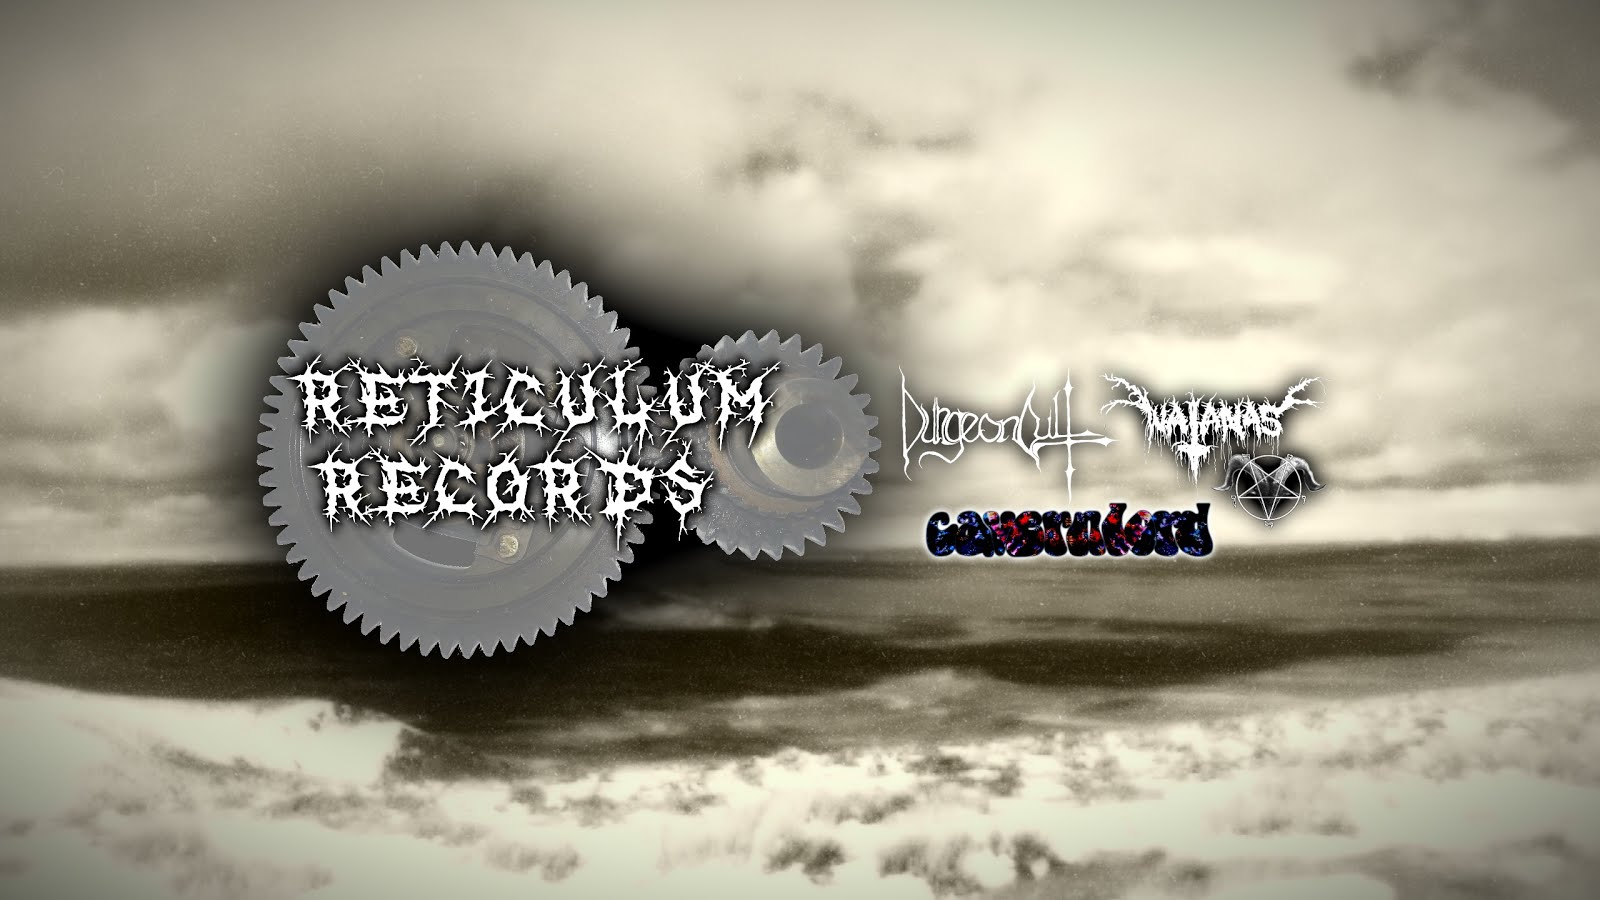 Reticulum Records